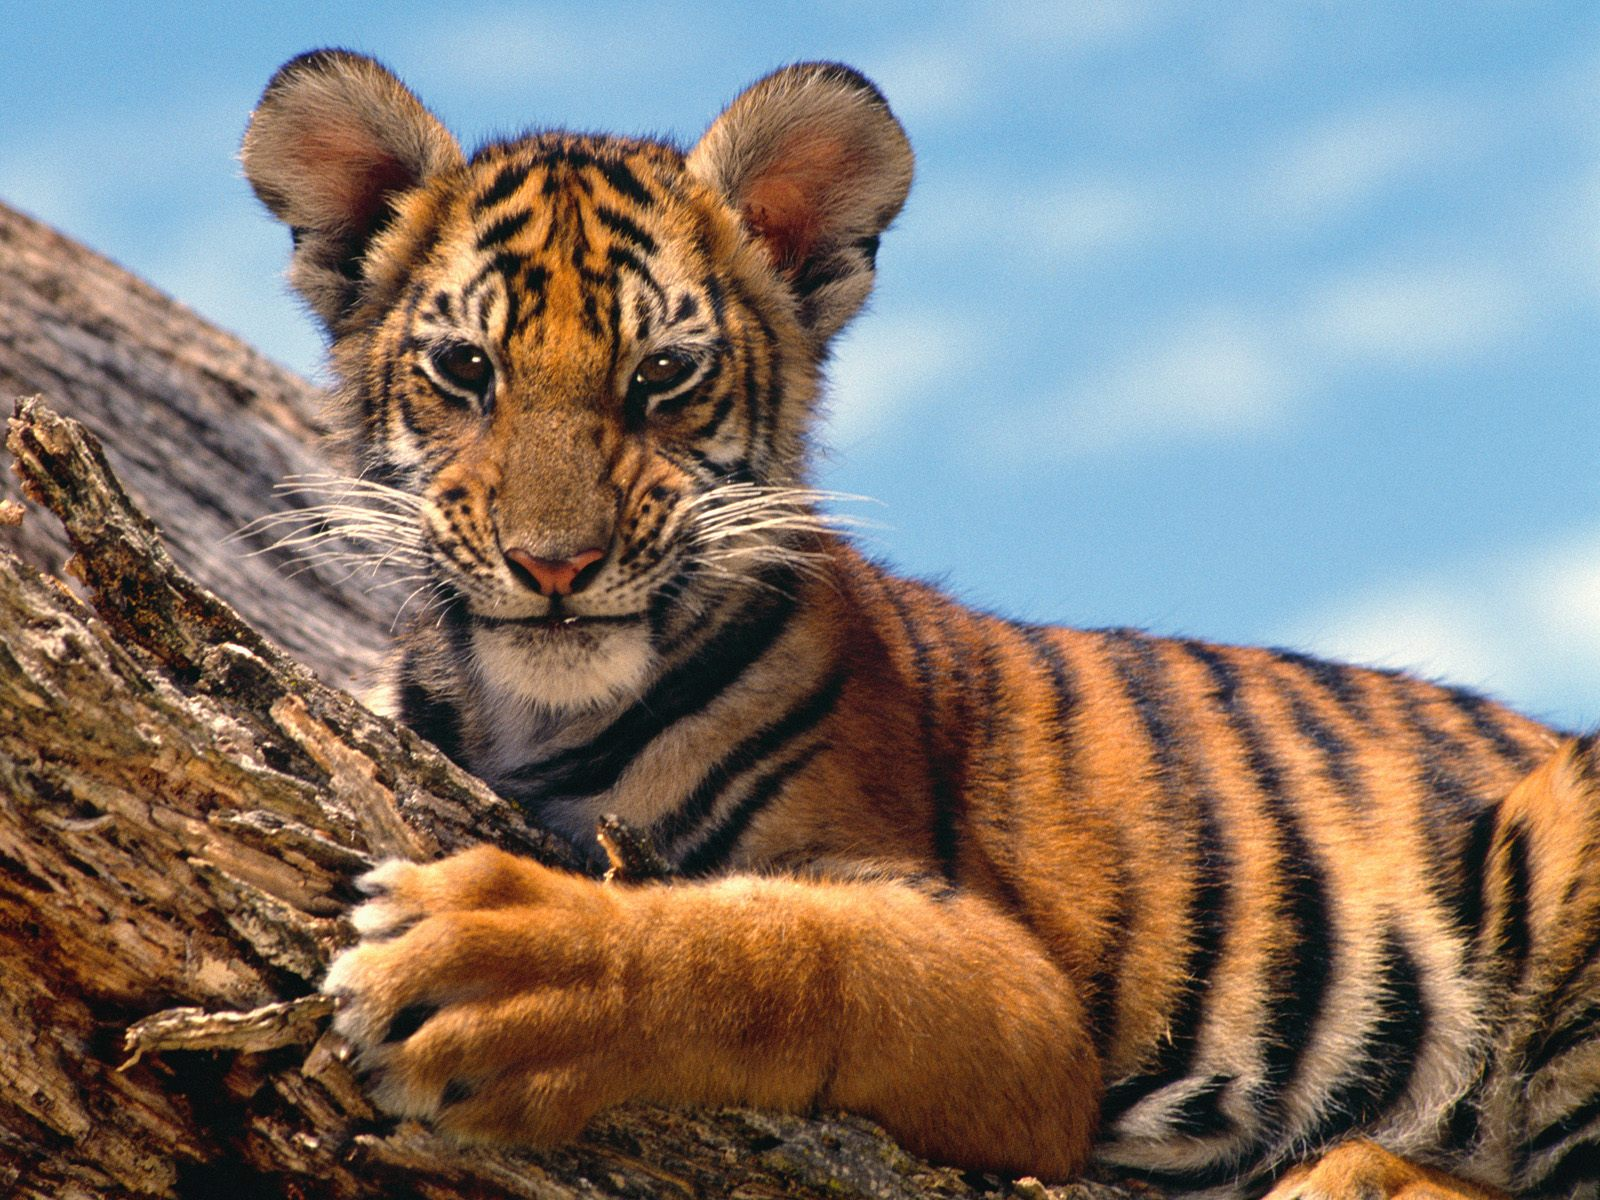 Collection of Baby Tiger Wallpaper on HDWallpapers